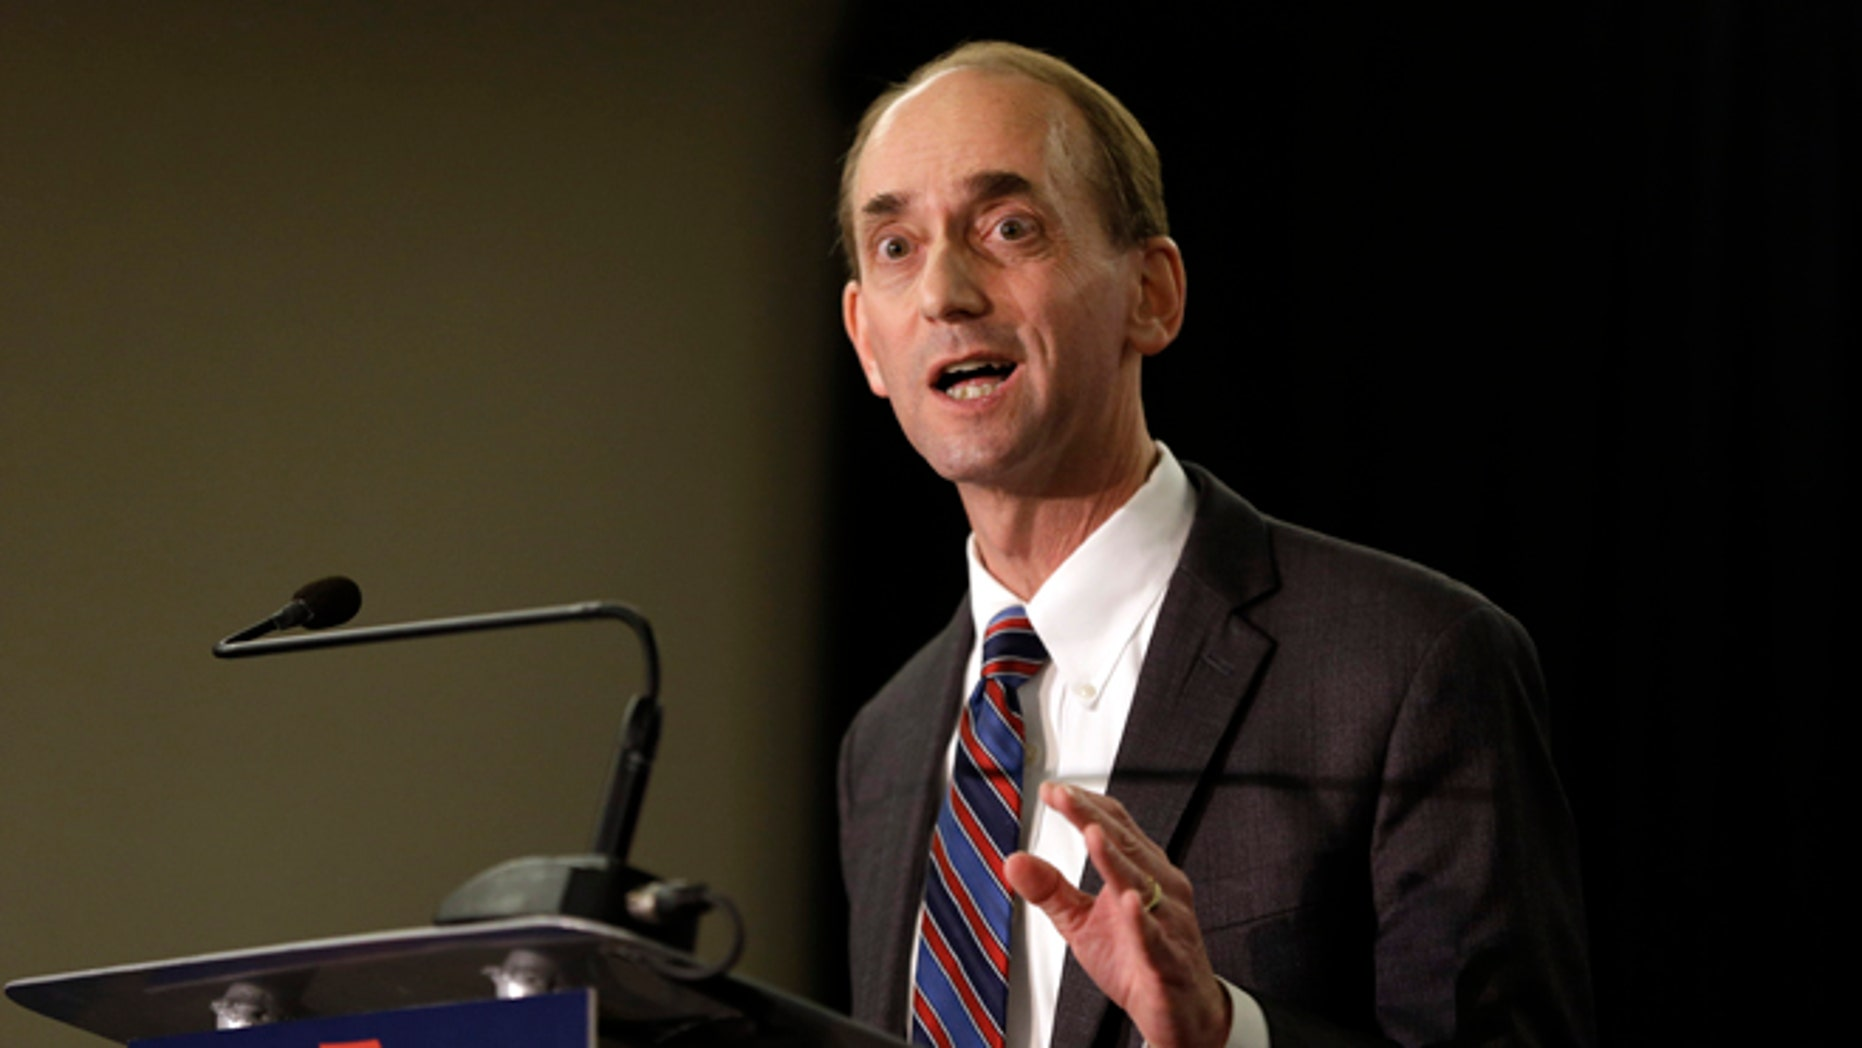 FILE 2008: Missouri Auditor Tom Schweich announces his candidacy for governor in St. Louis.